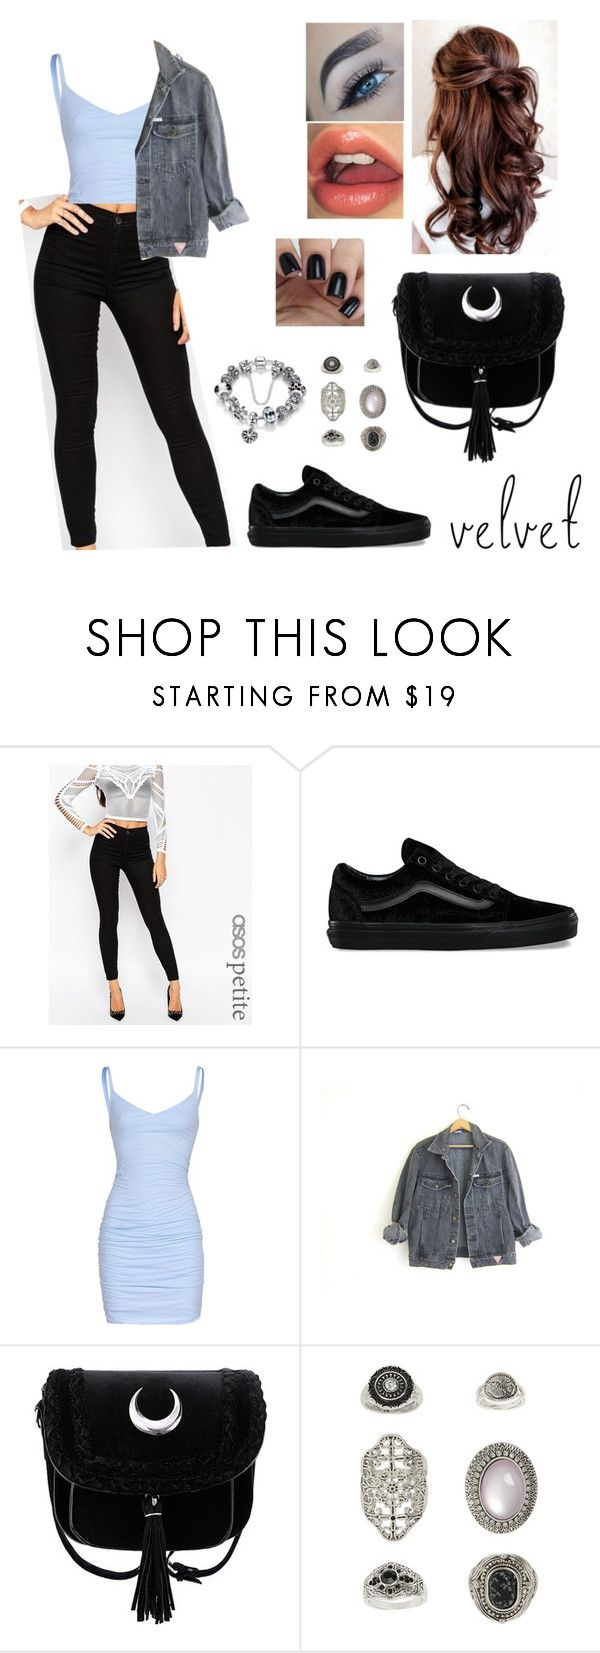 """""""velvet"""" by blackparadice ❤ liked on Polyvore featuring ASOS, Vans, Velvet by Graham & Spencer, GUESS and Topshop"""